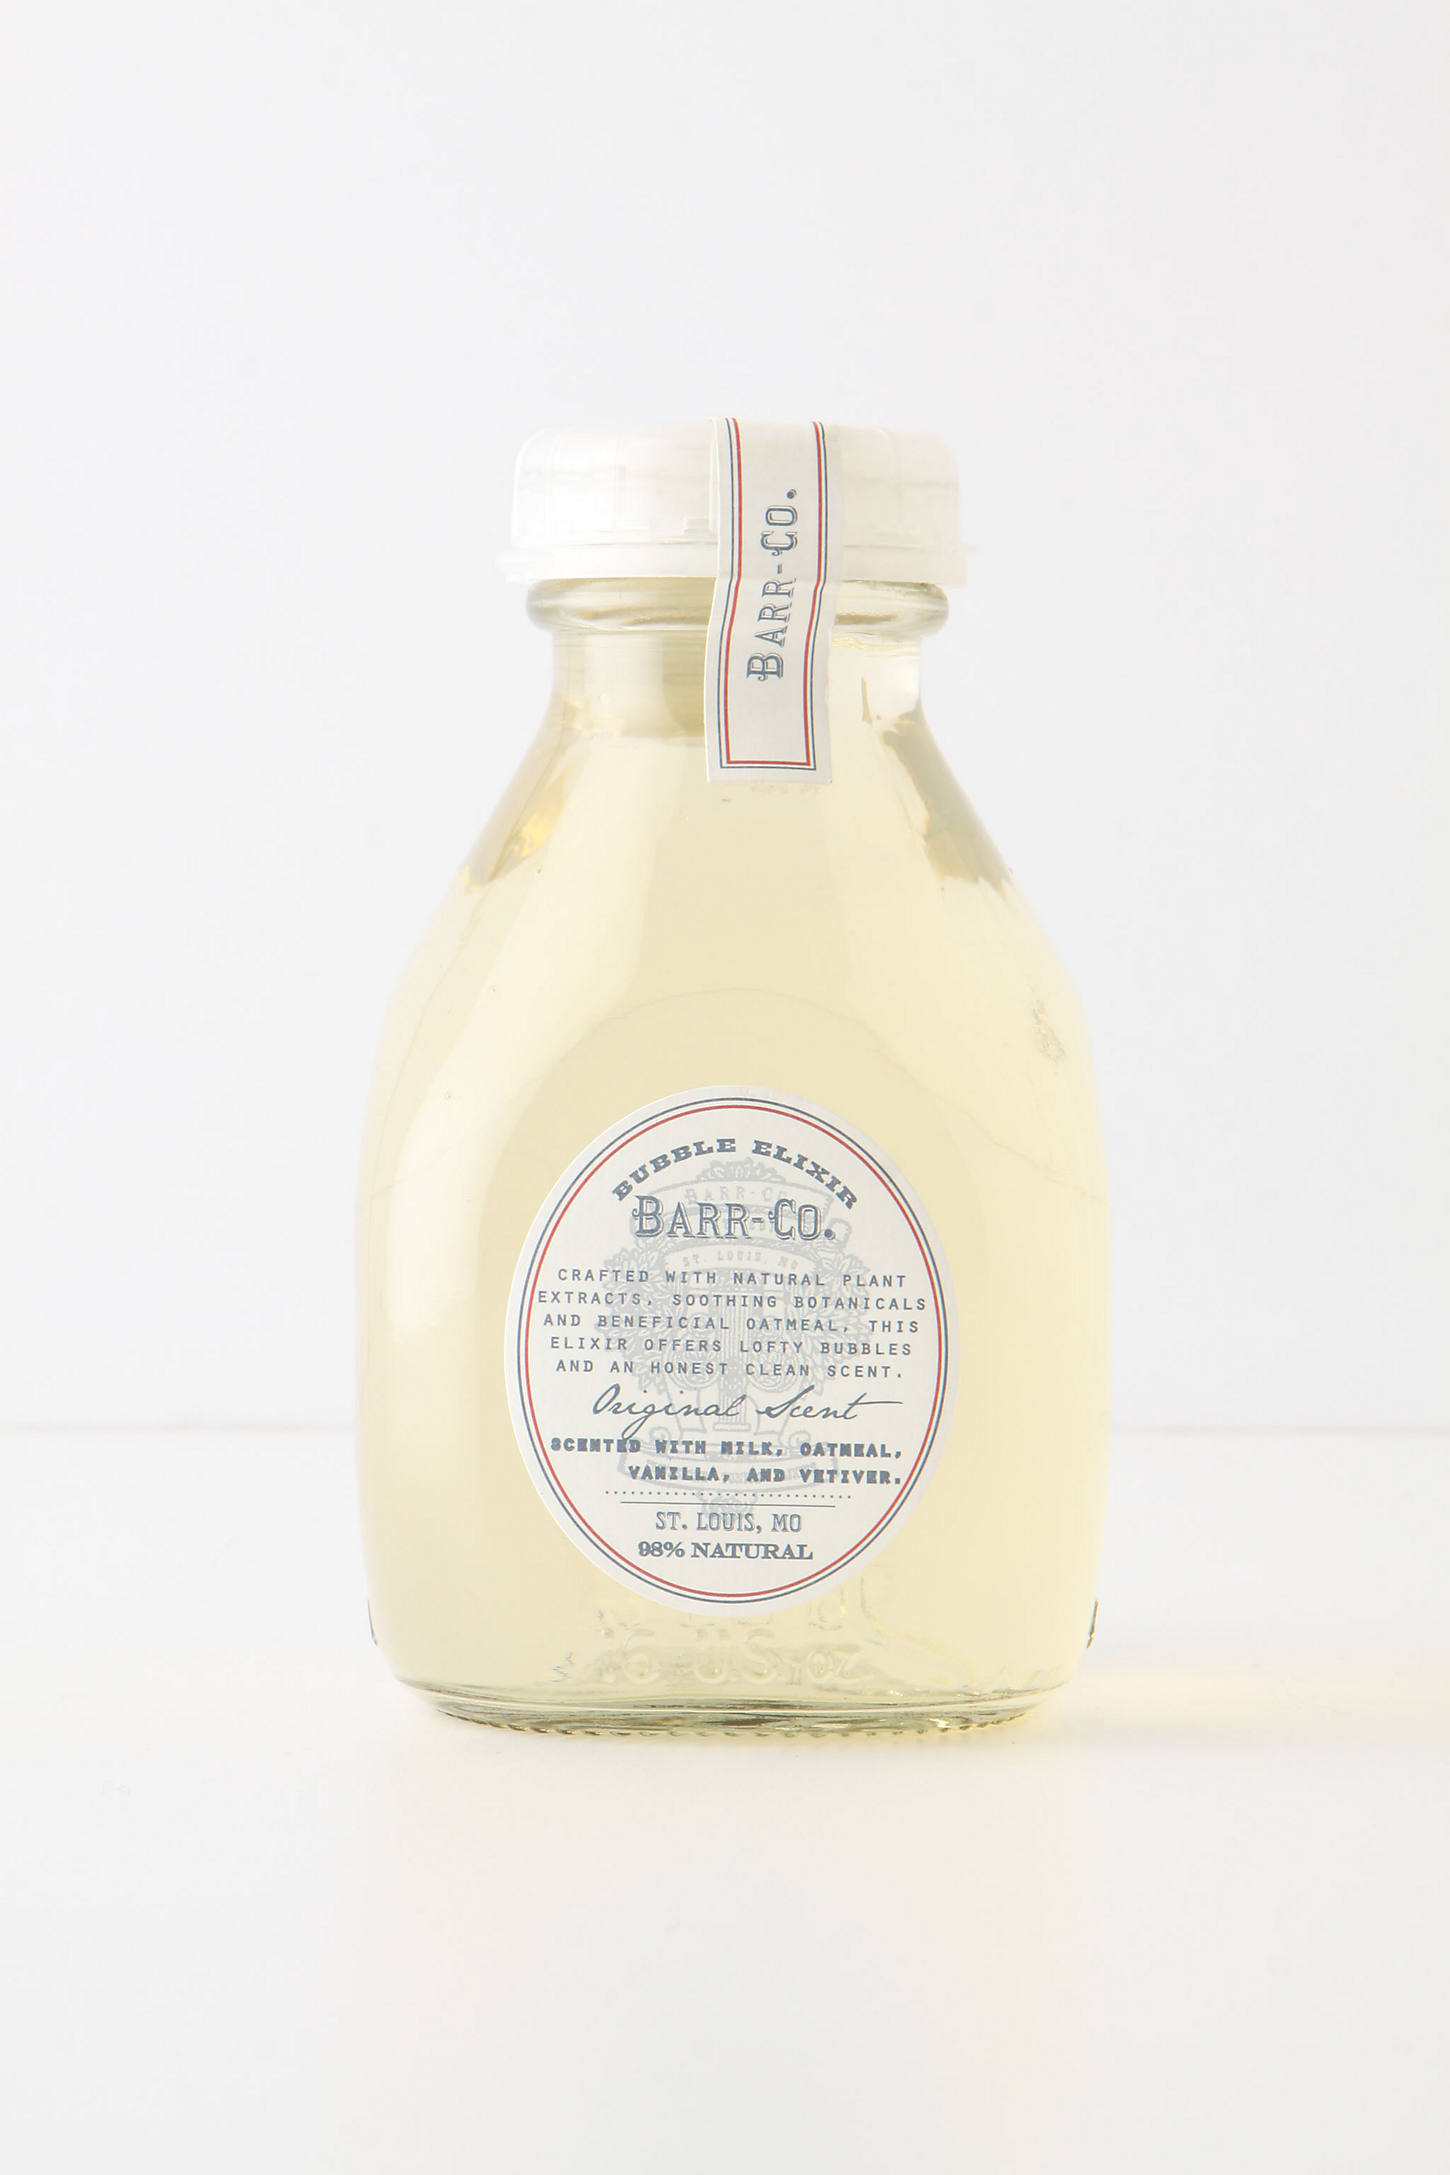 Barr-Co. Bubble Elixir